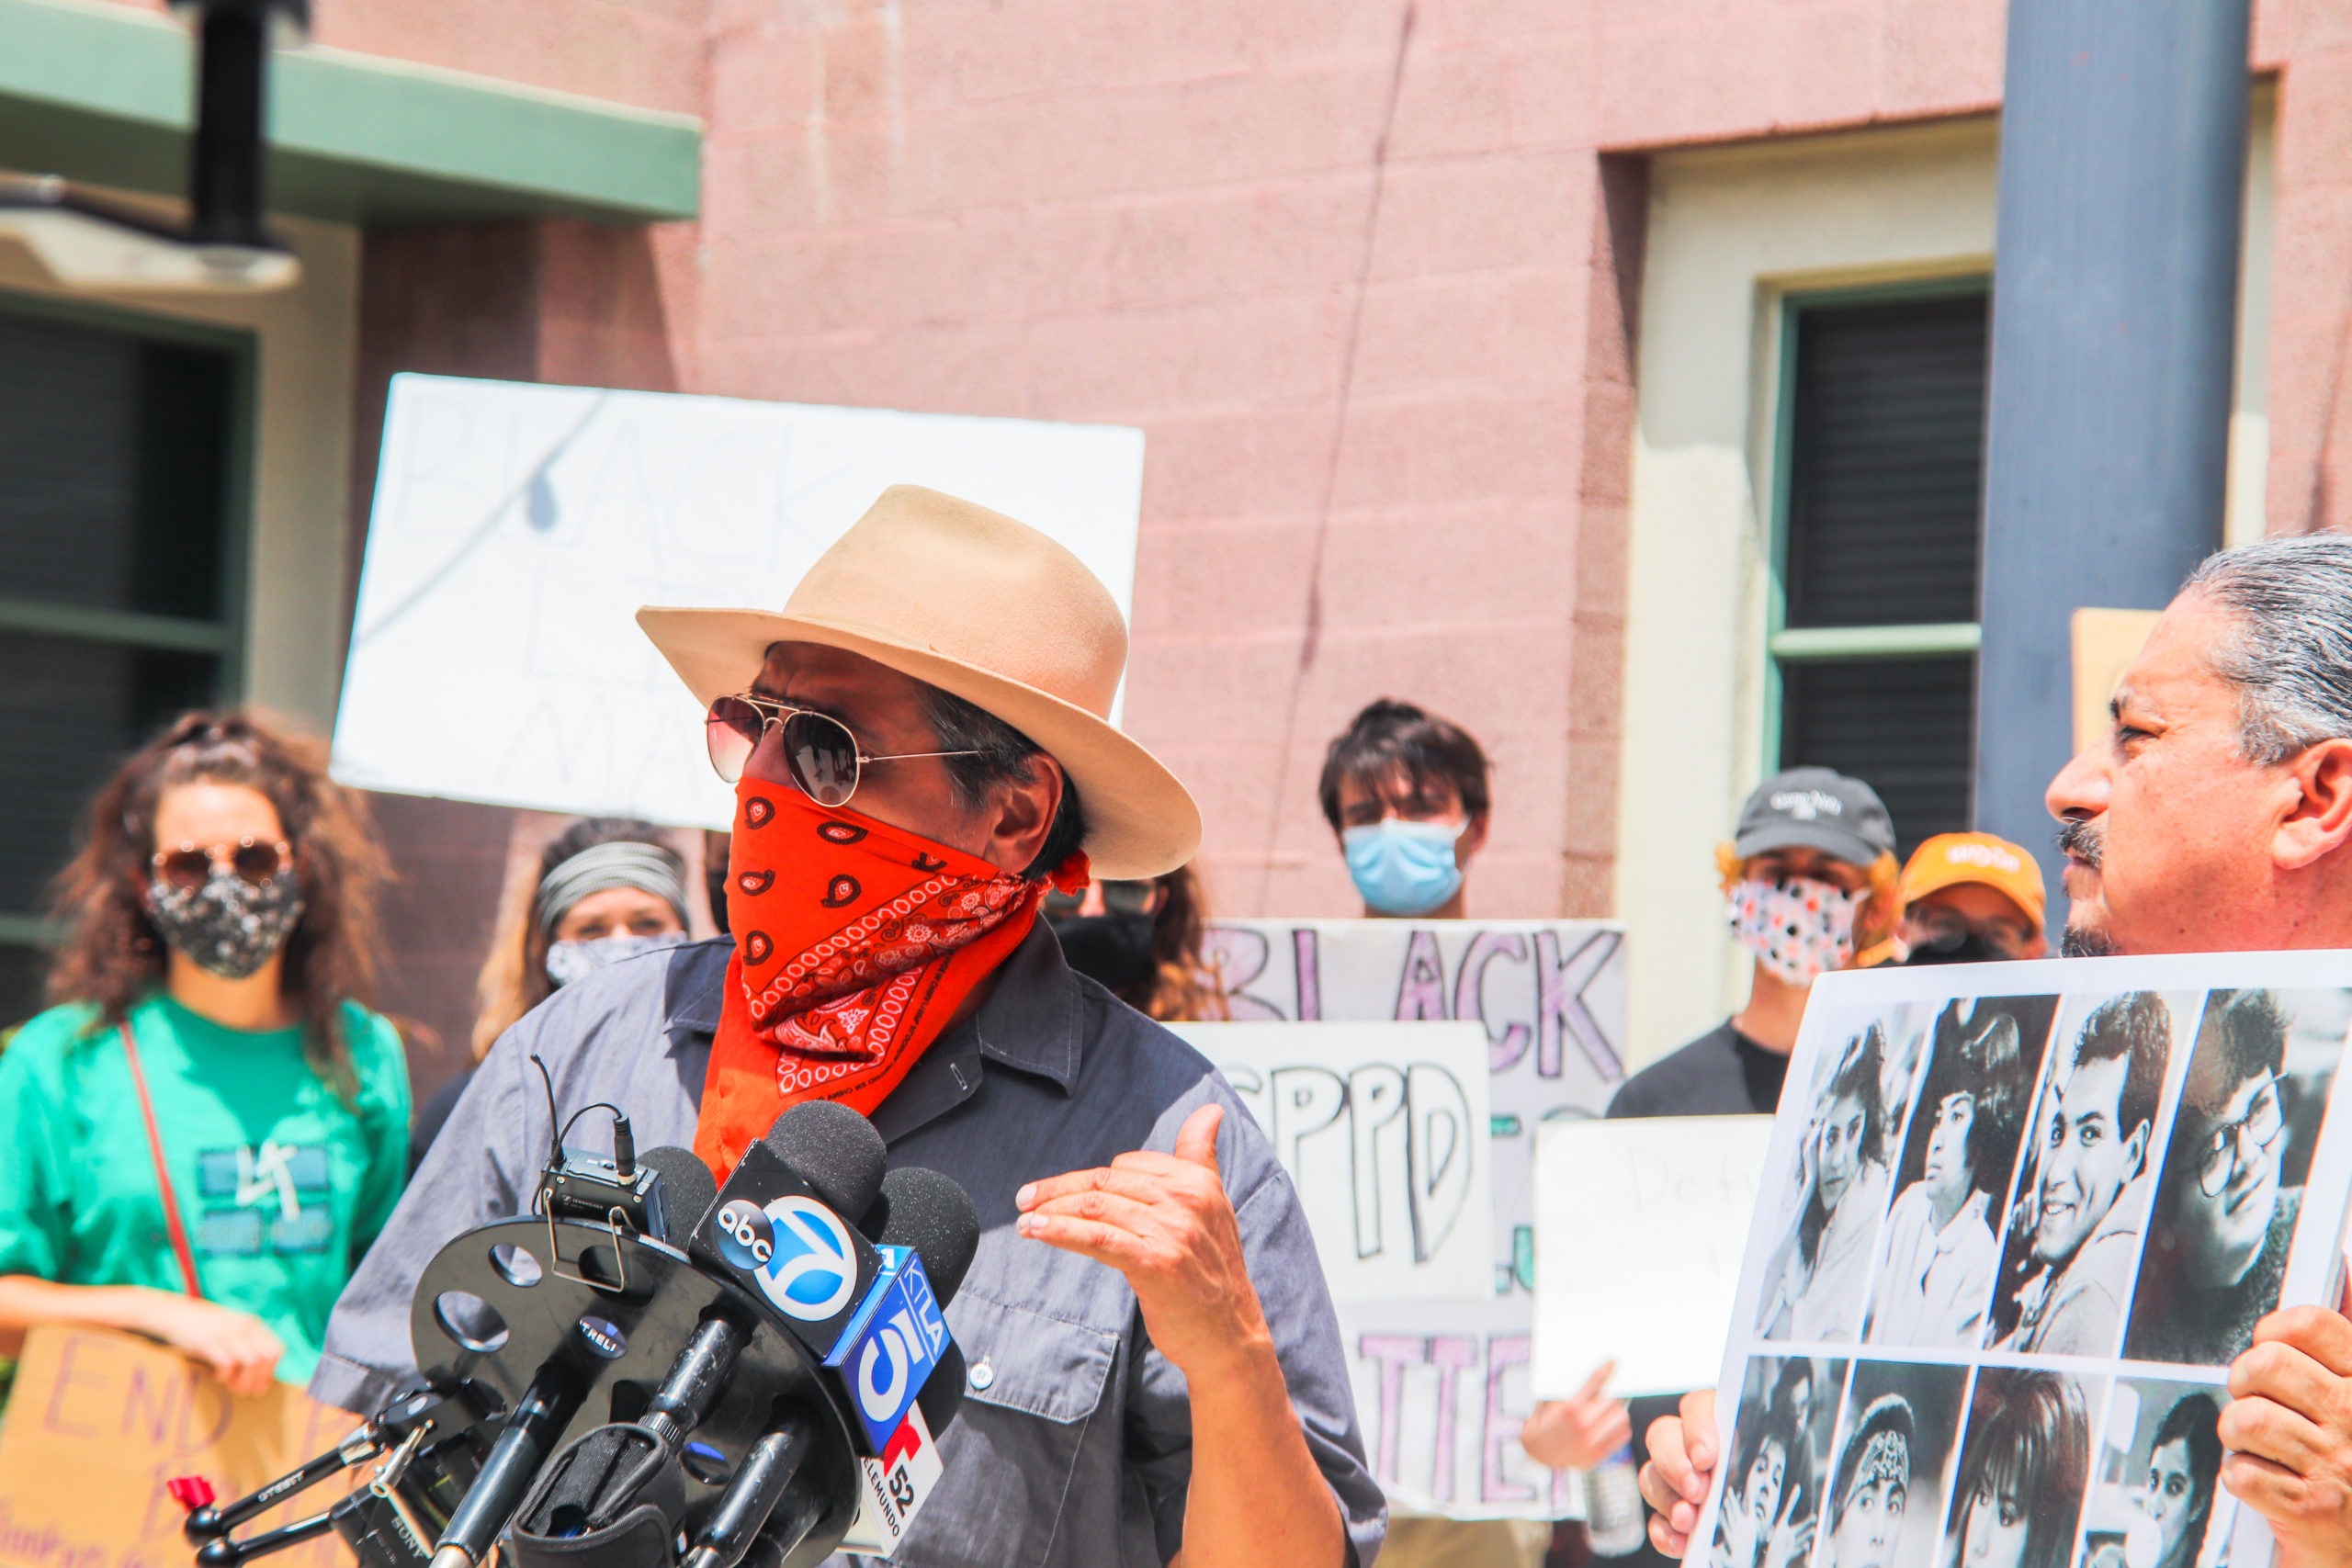 south-pasadena-news-06-24-2020-vanessa-marquez-police-shooting-wrongful-death-lawsuit-city-hall-25